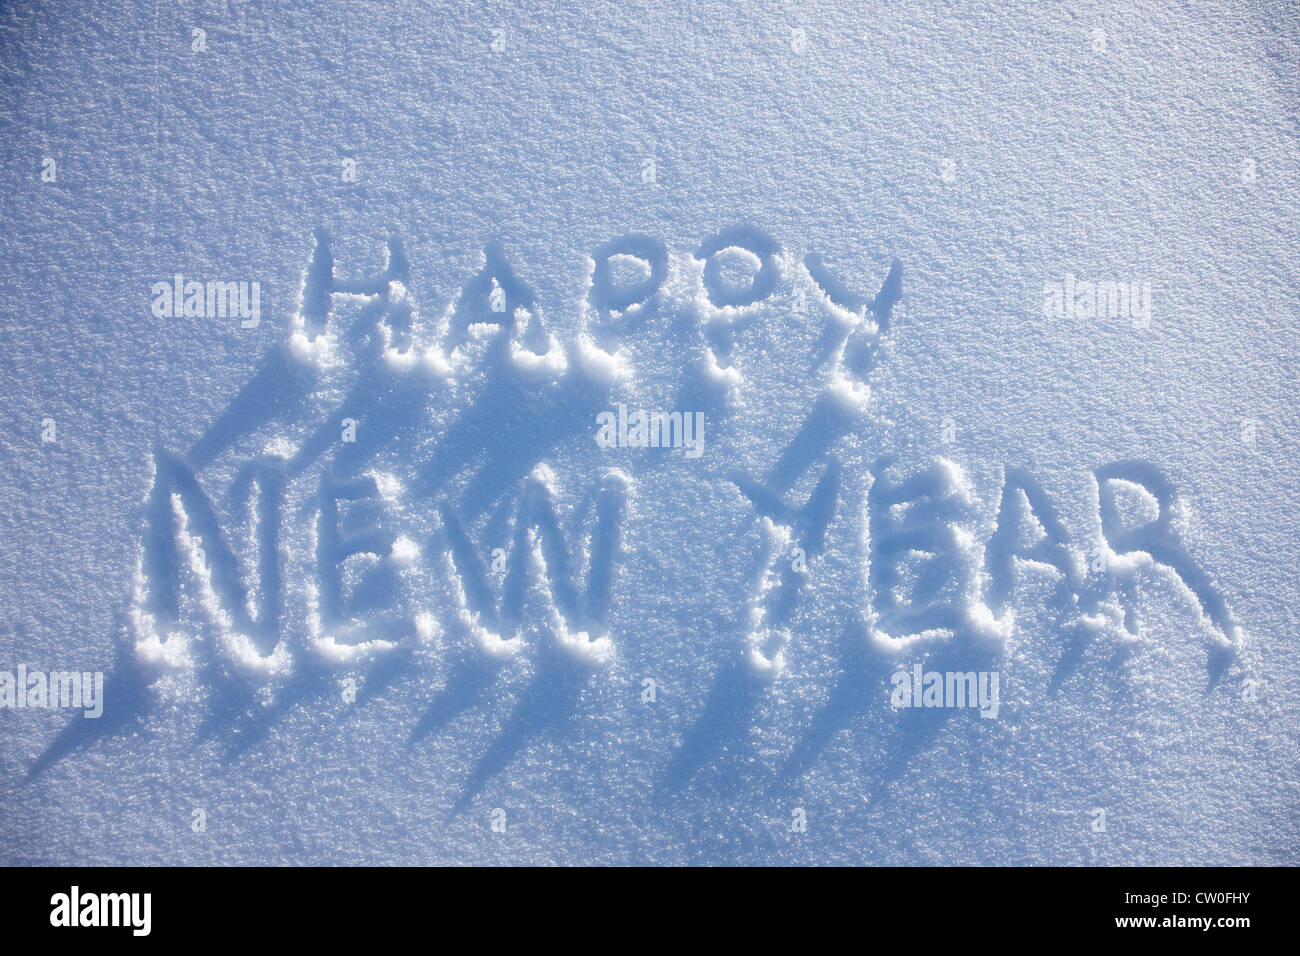 Happy New Year written in snow - Stock Image